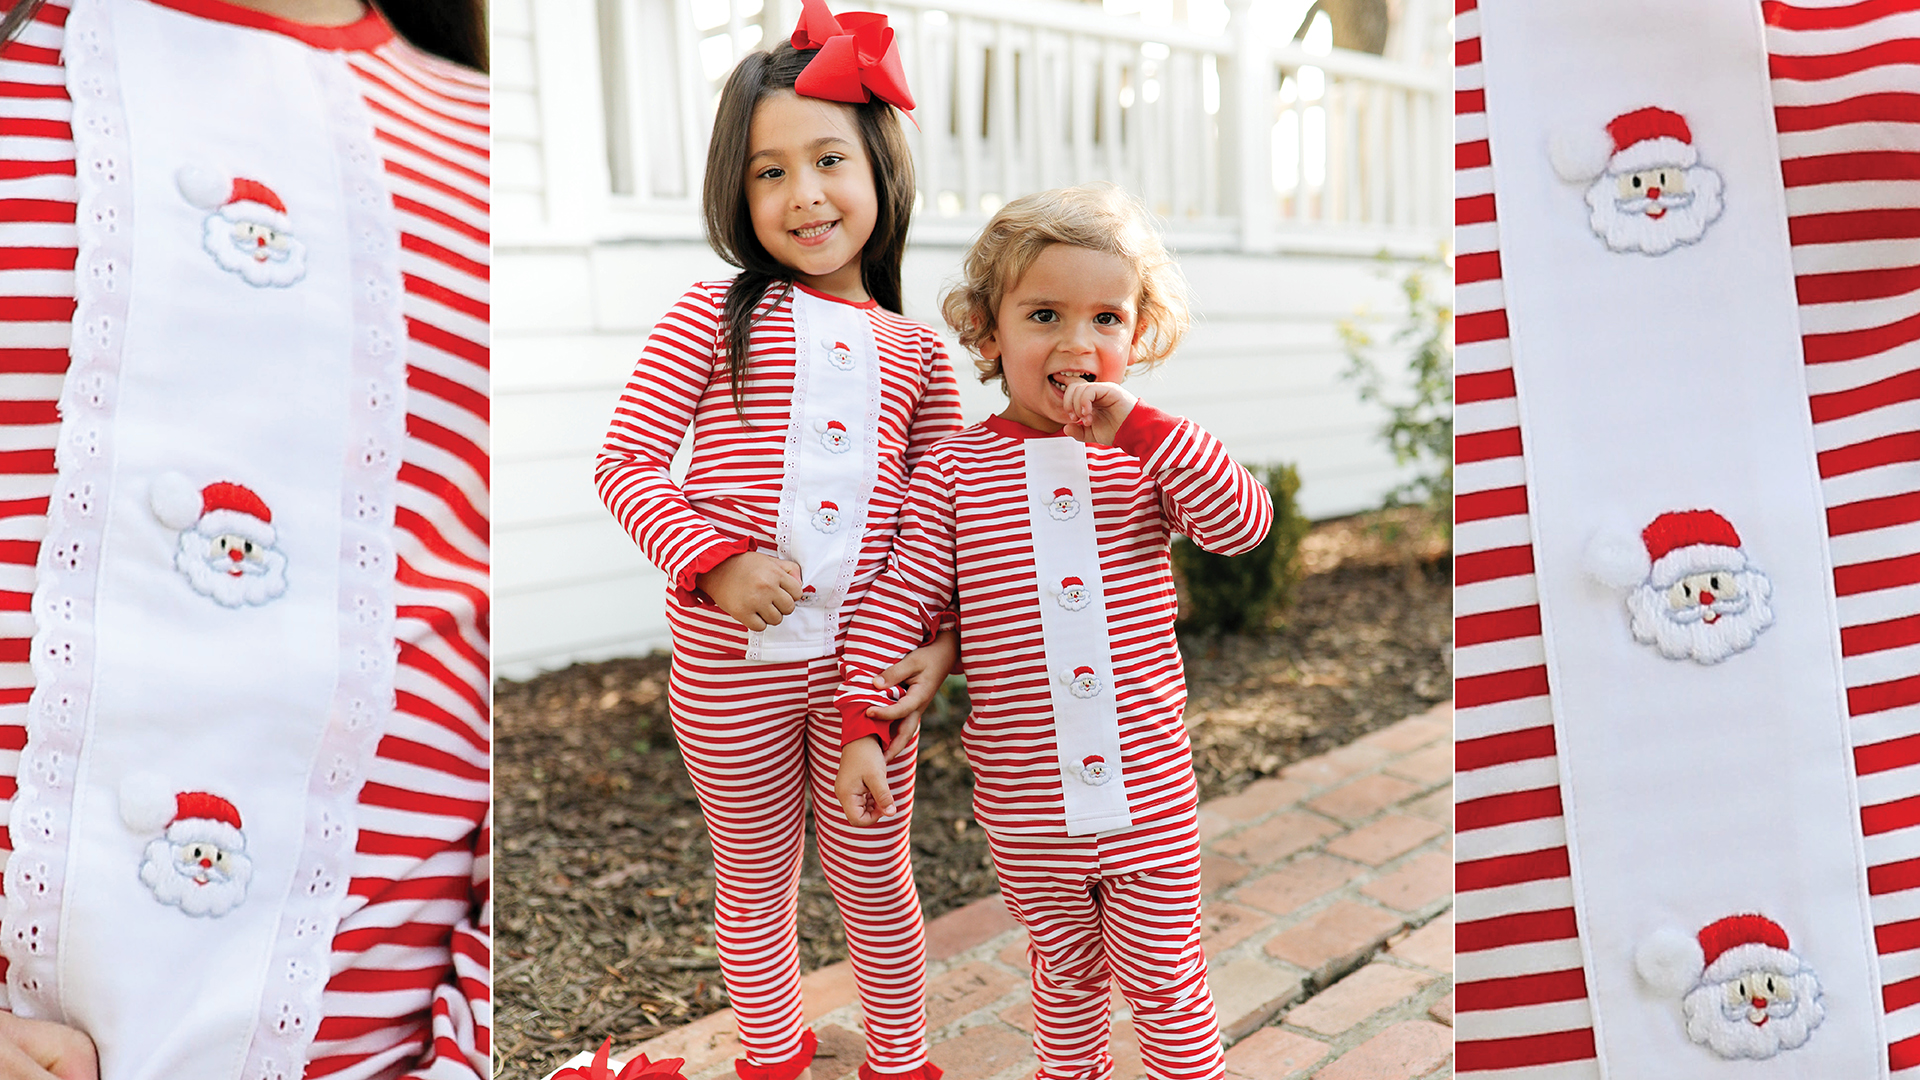 Kids in red, white, and blue patriotic outfits